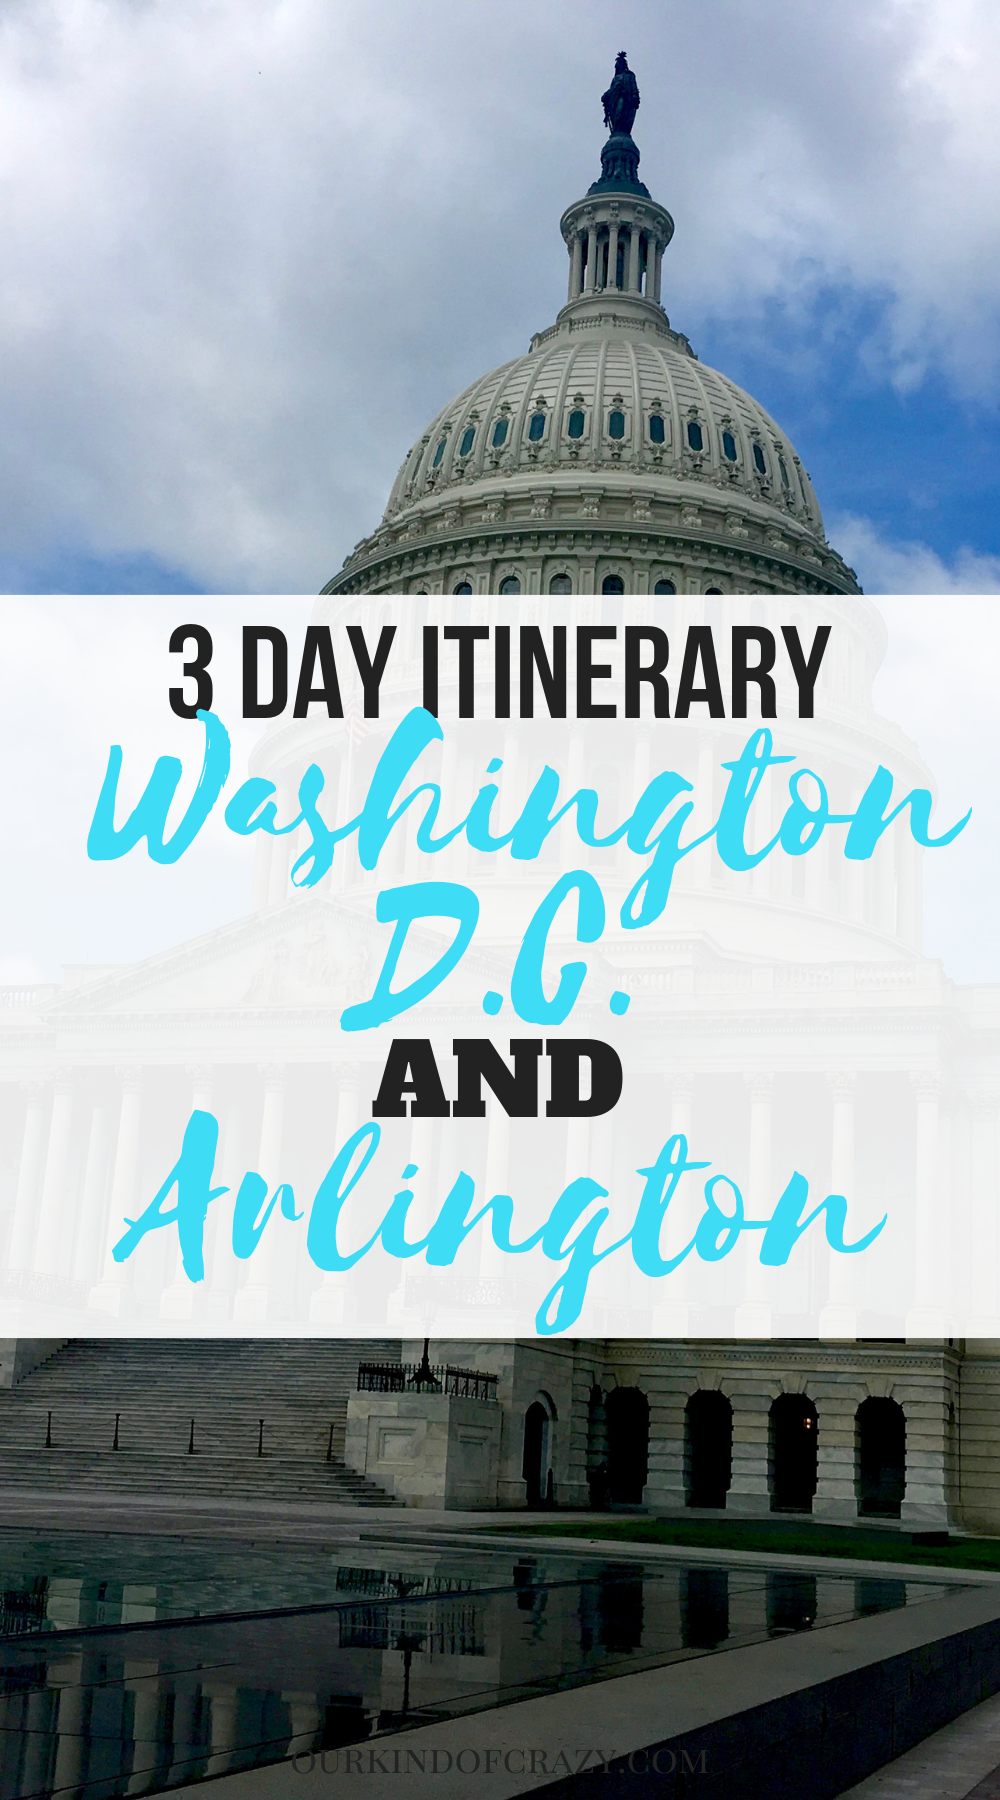 Things to do in Washington DC and Arlington, Virginia. Here are some great ideas on what to do in Washington DC and Arlington.